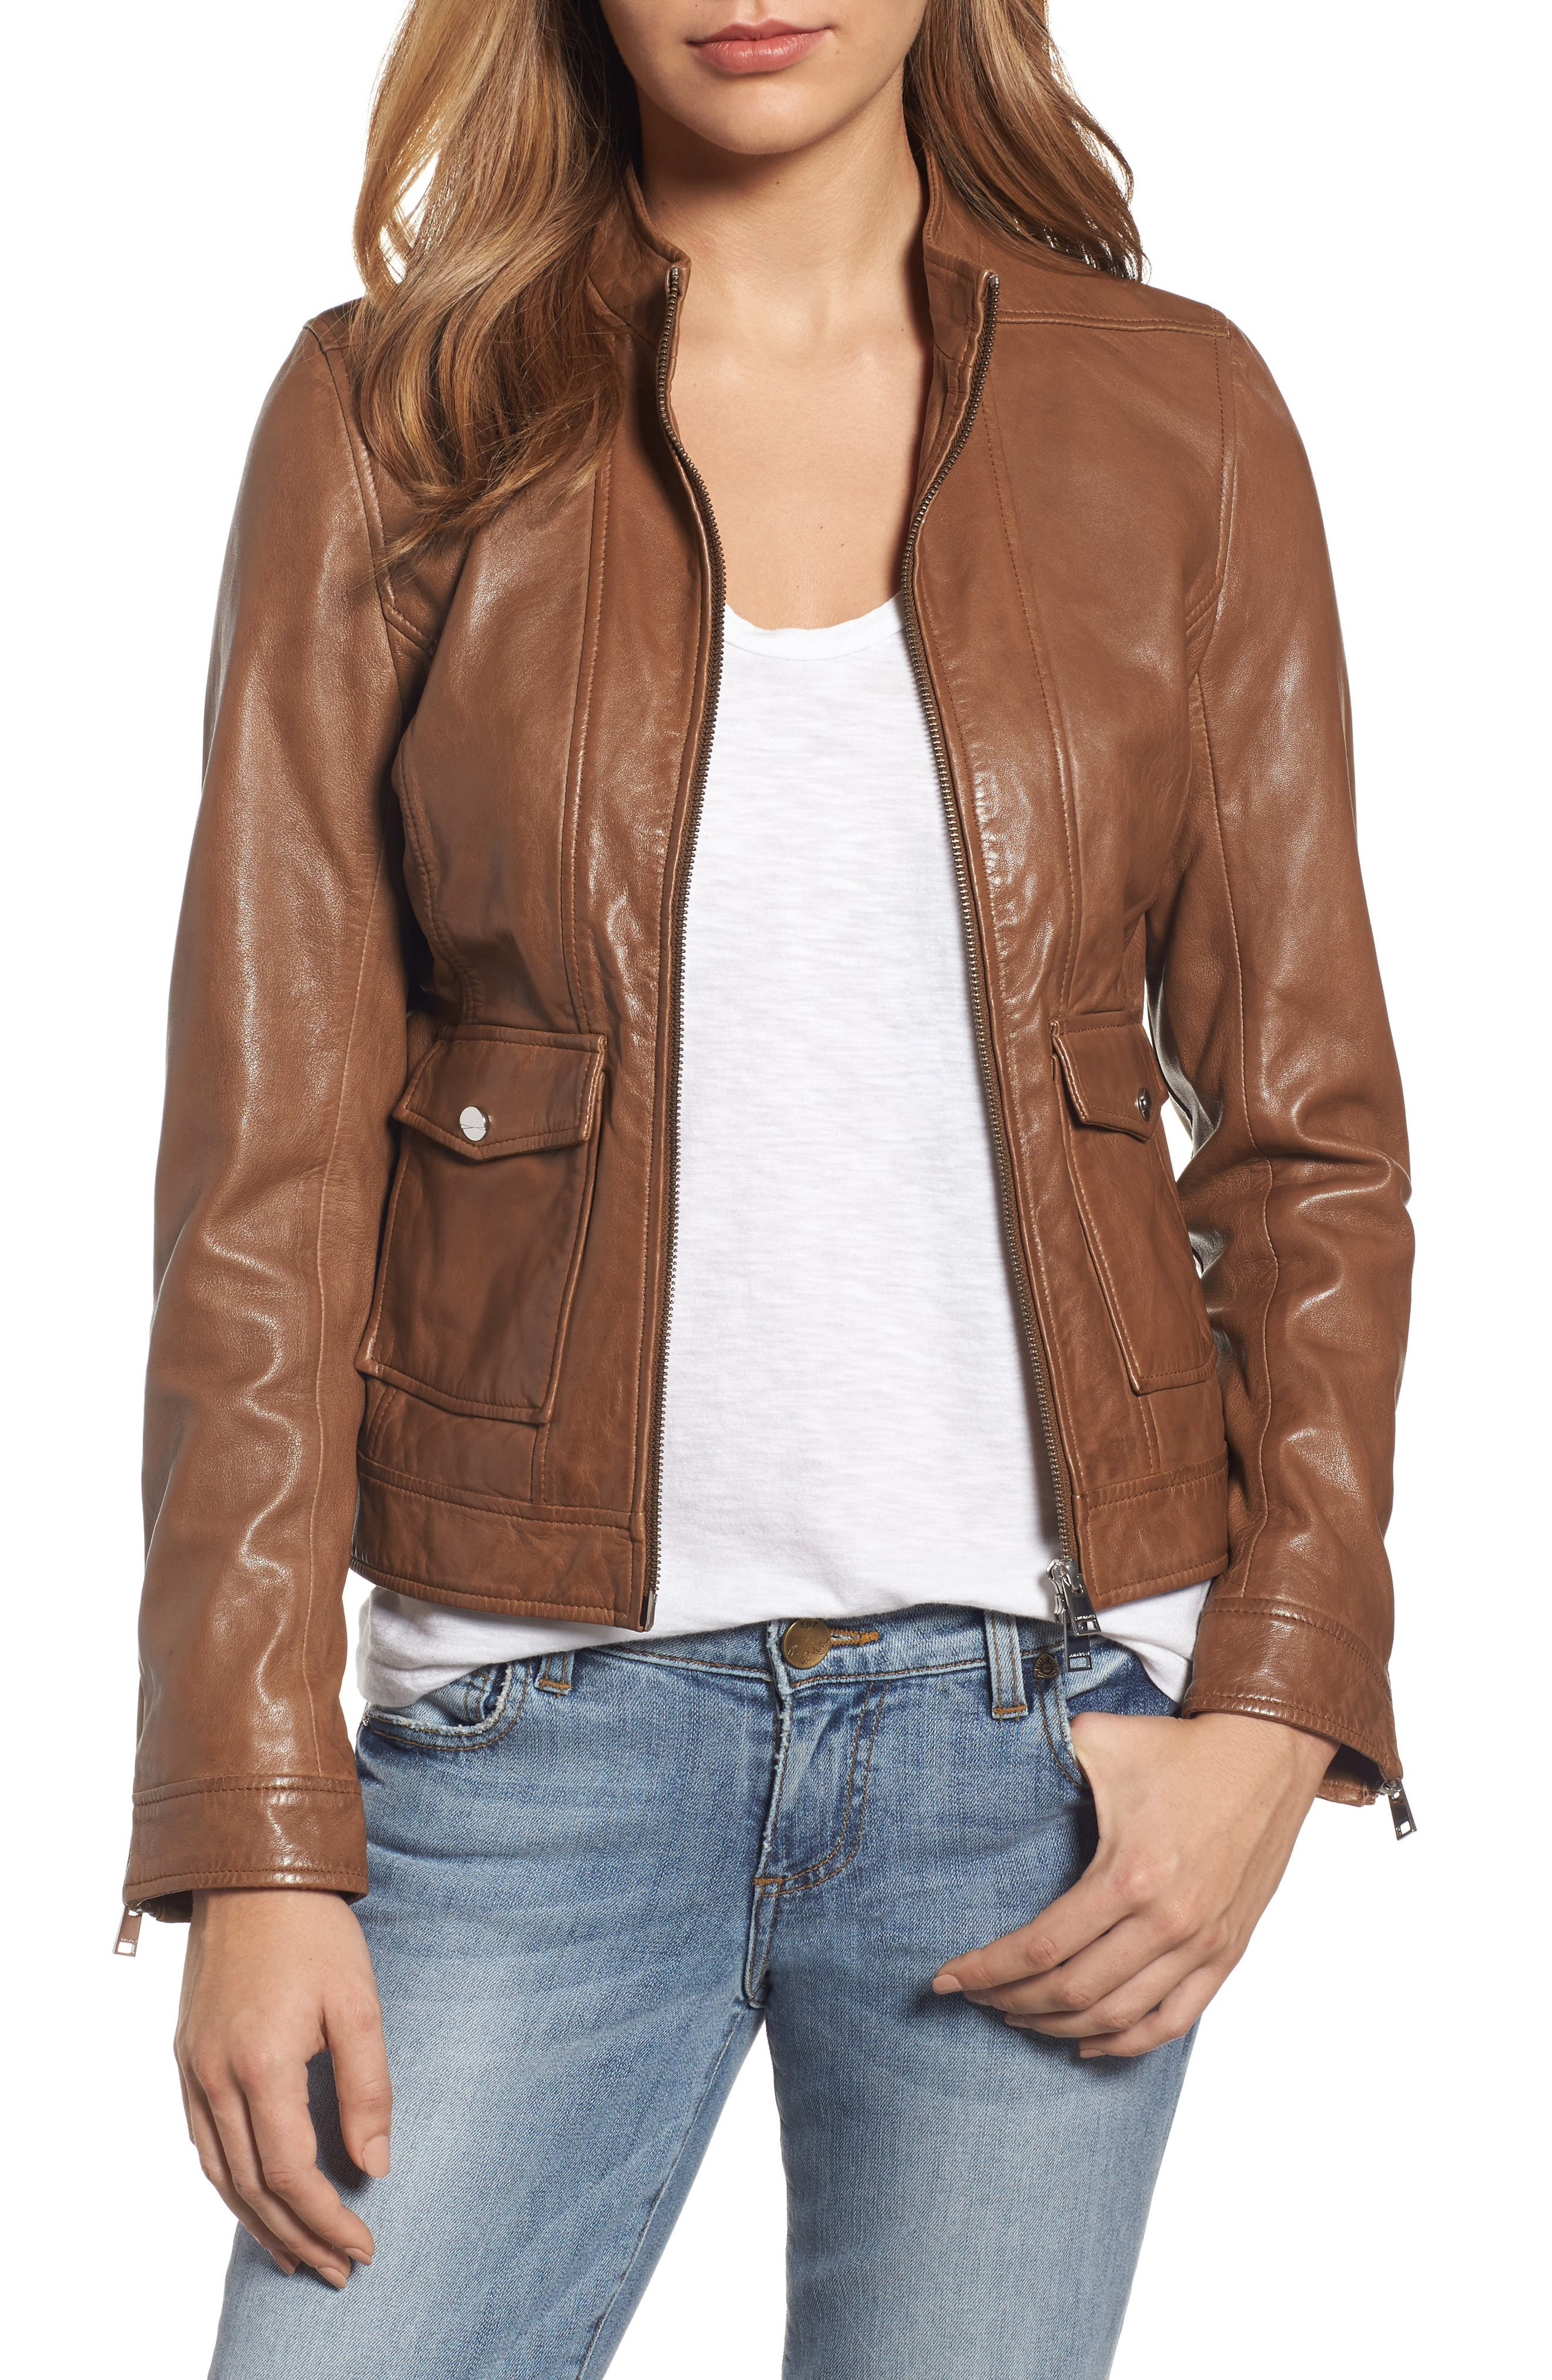 Main Image - LAMARQUE Patch Pocket Leather Biker Jacket